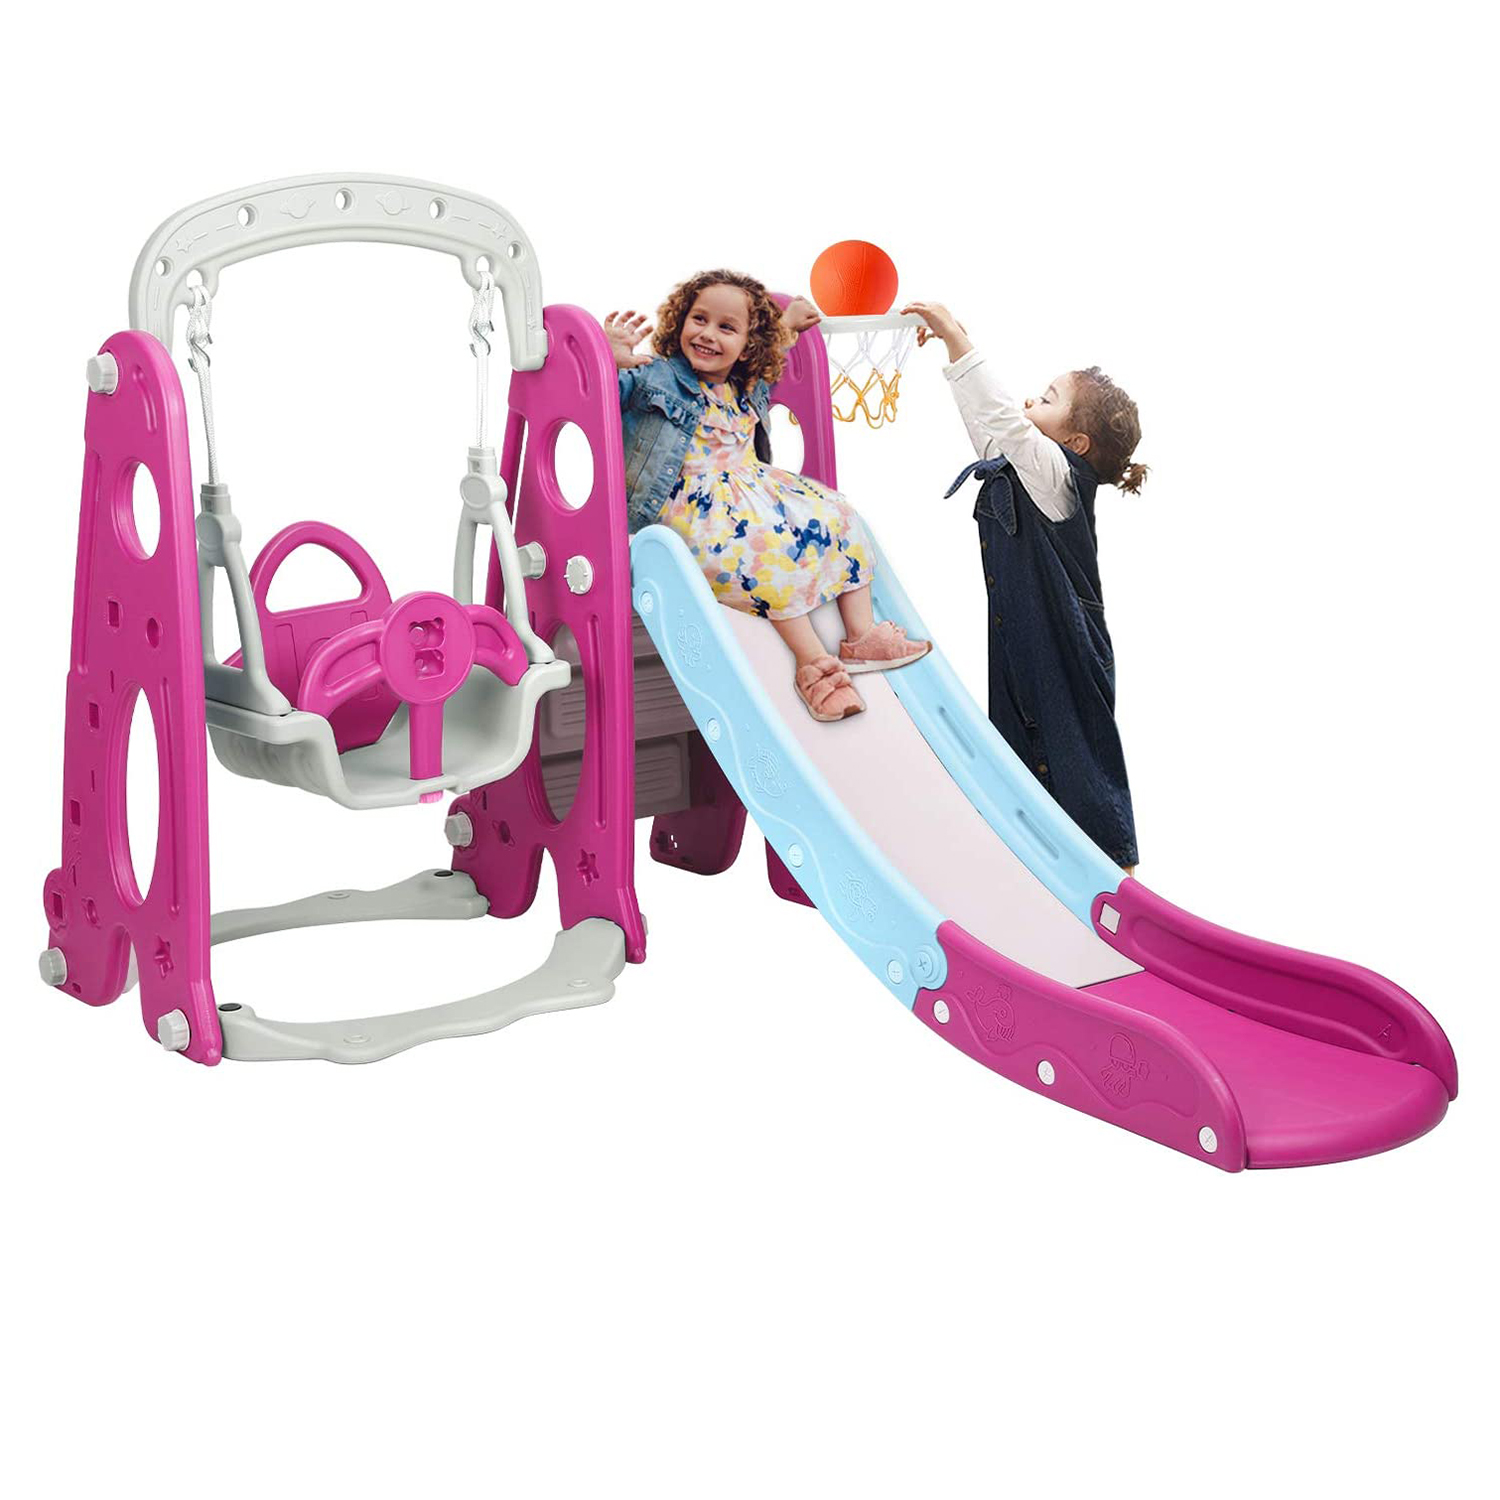 Best Outdoor Baby Toy: Bahom 3-in-1 Playset